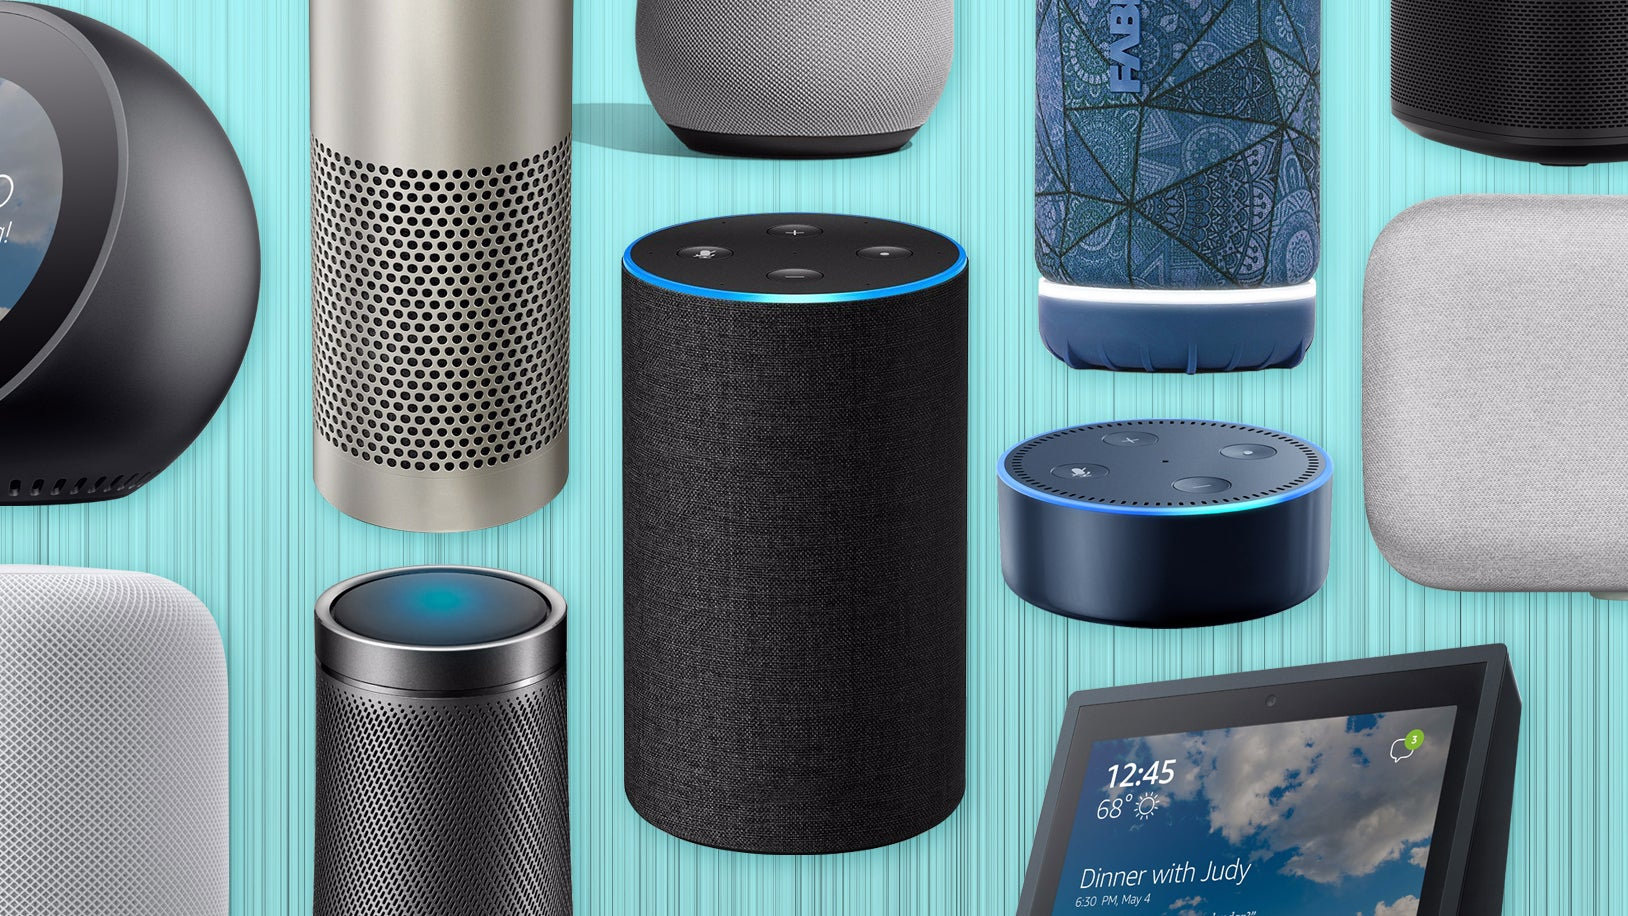 Best smart speakers of 2018: Reviews and buying advice | TechHive